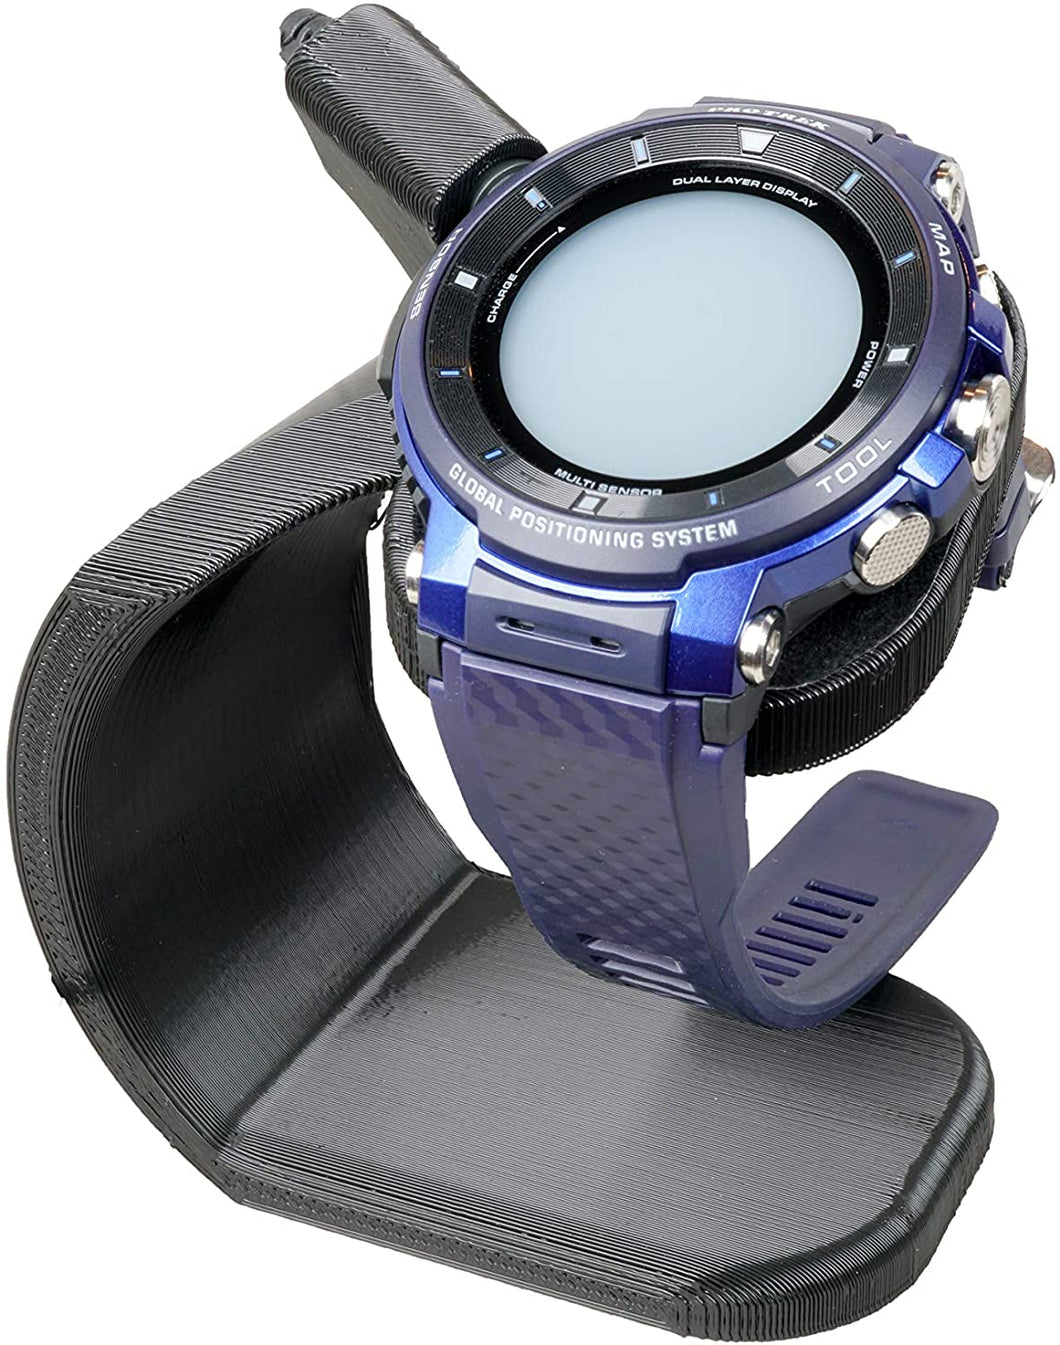 Artifex Design Stand Configured for Casio Pro Trek Touchscreen Smartwatch - Artifex Design 3D